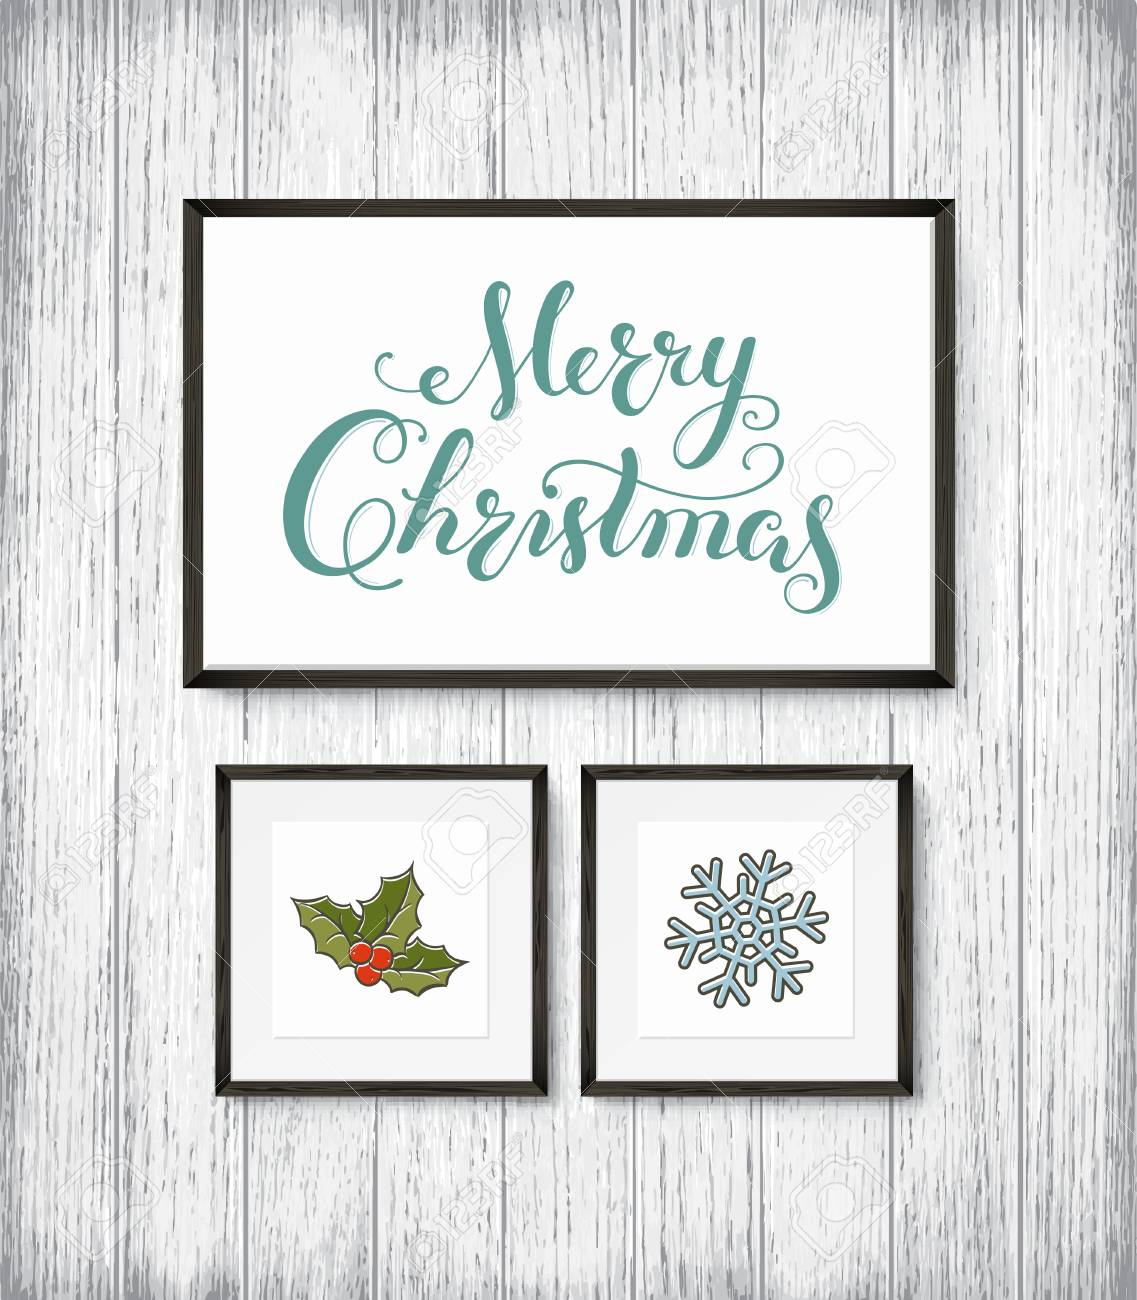 Calligraphy Lettering MERRY CHRISTMAS poster with hand drawn elements in frames on wooden wall. Vector illustration - 91756209